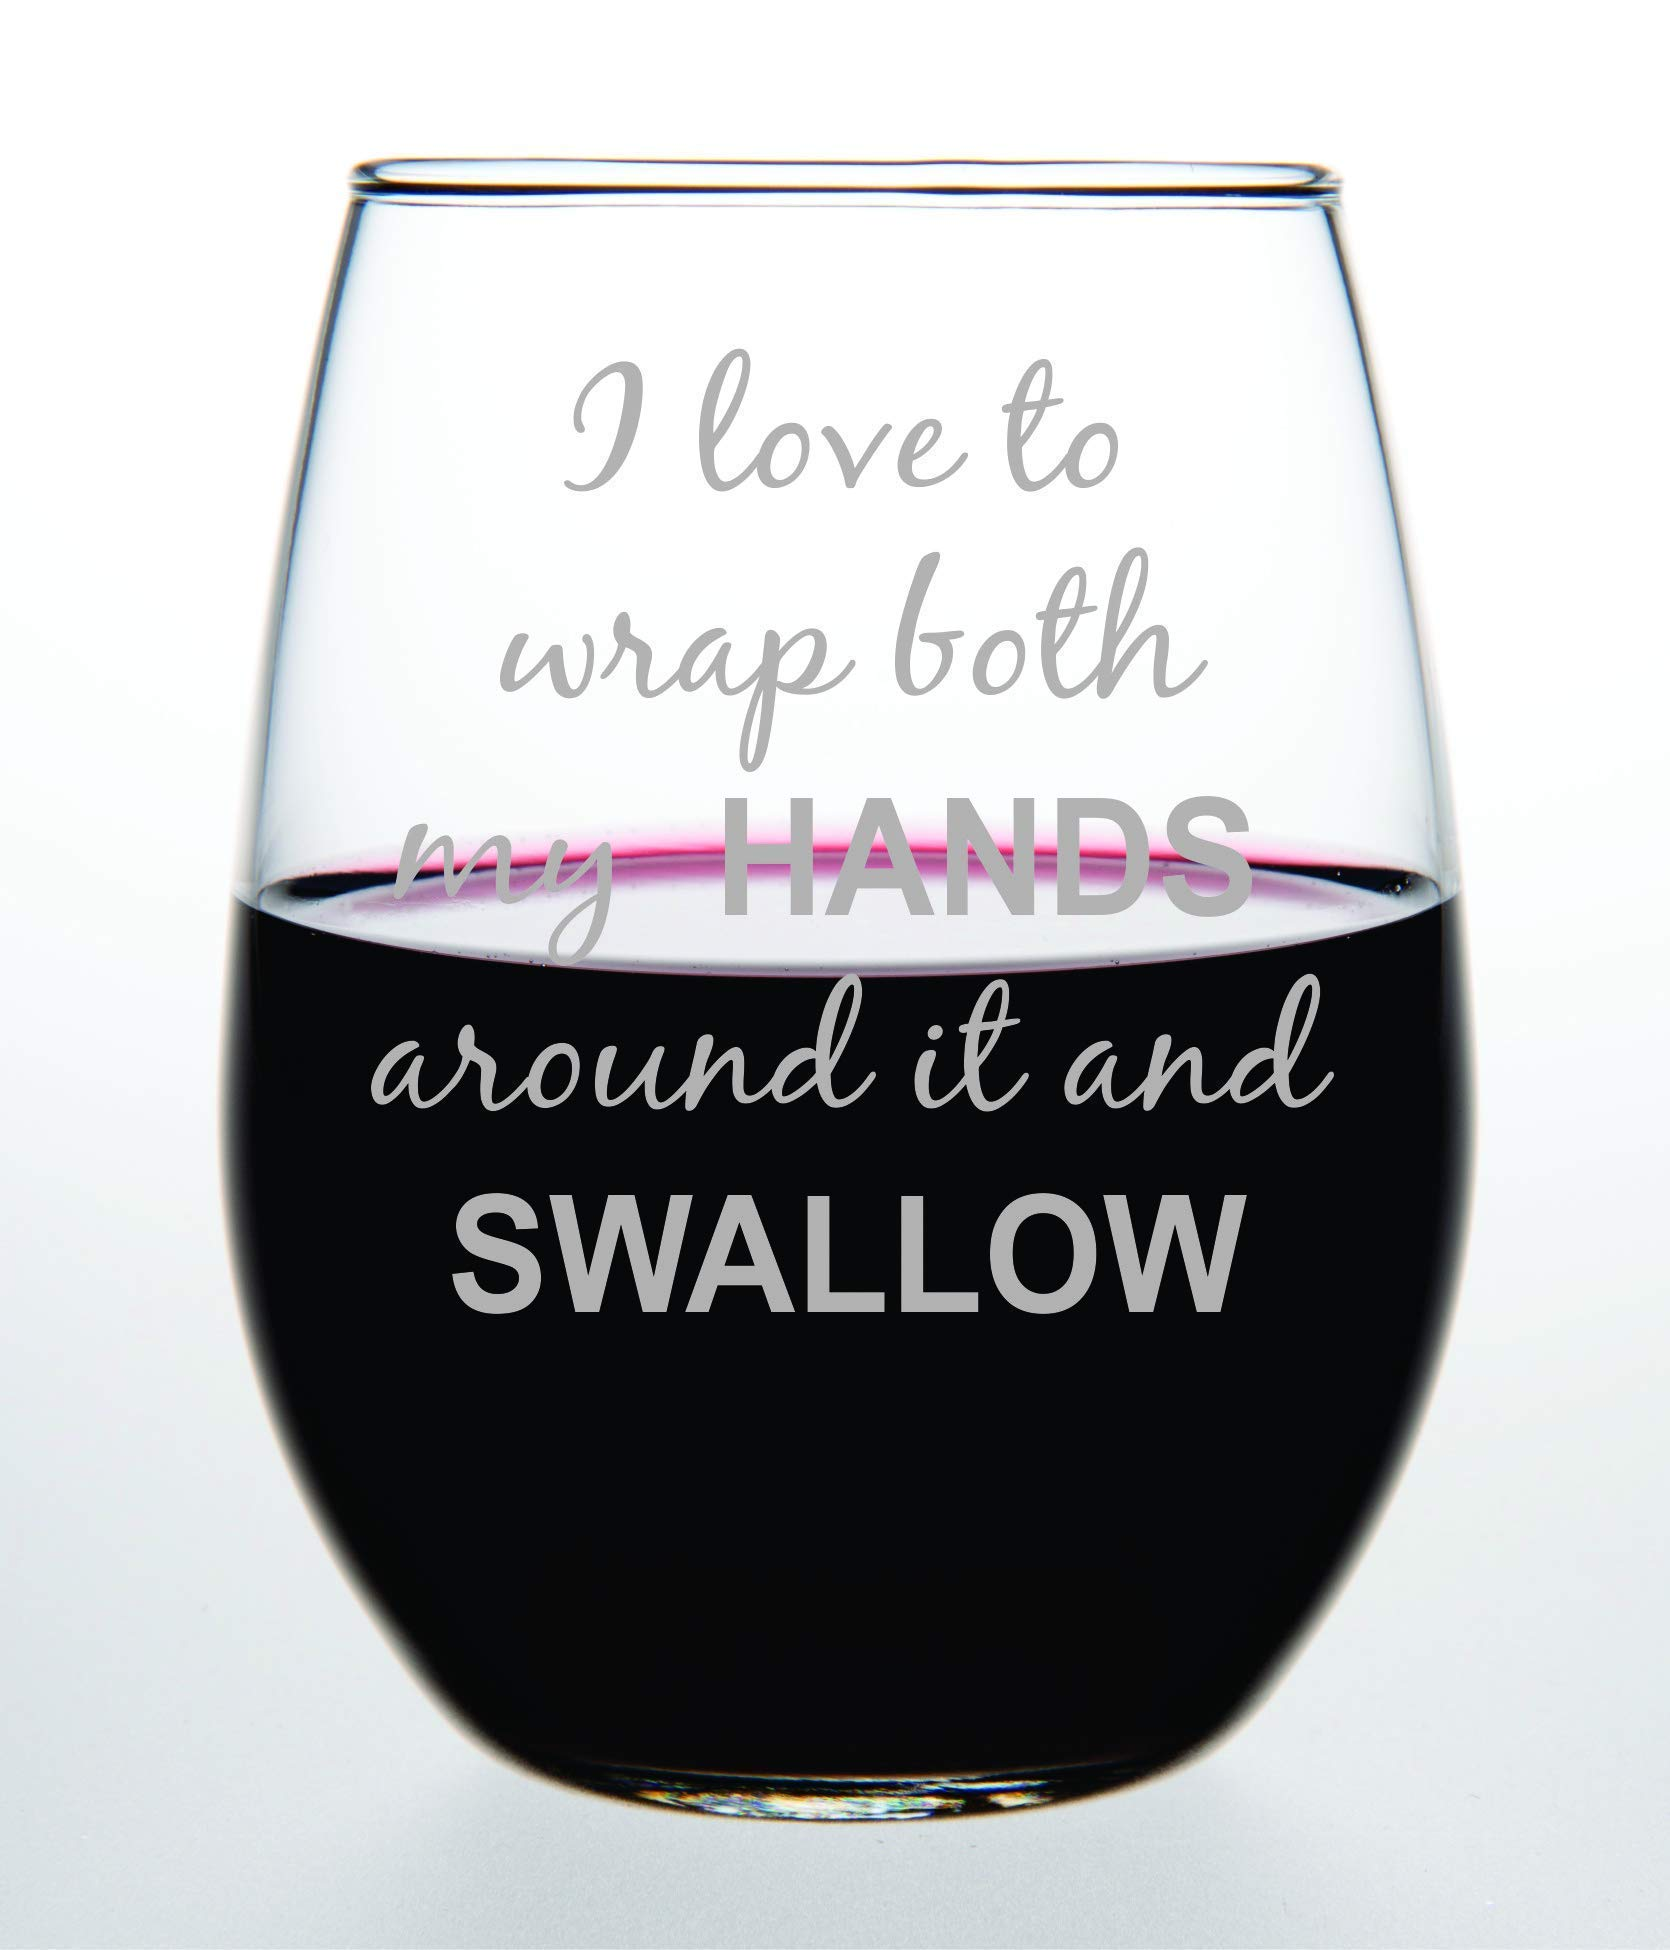 C & M Personal Gifts (1 Piece) Funny Stemless Wine Glass with Sayings I Love to Wrap Both My Hands Around it and Swallow…